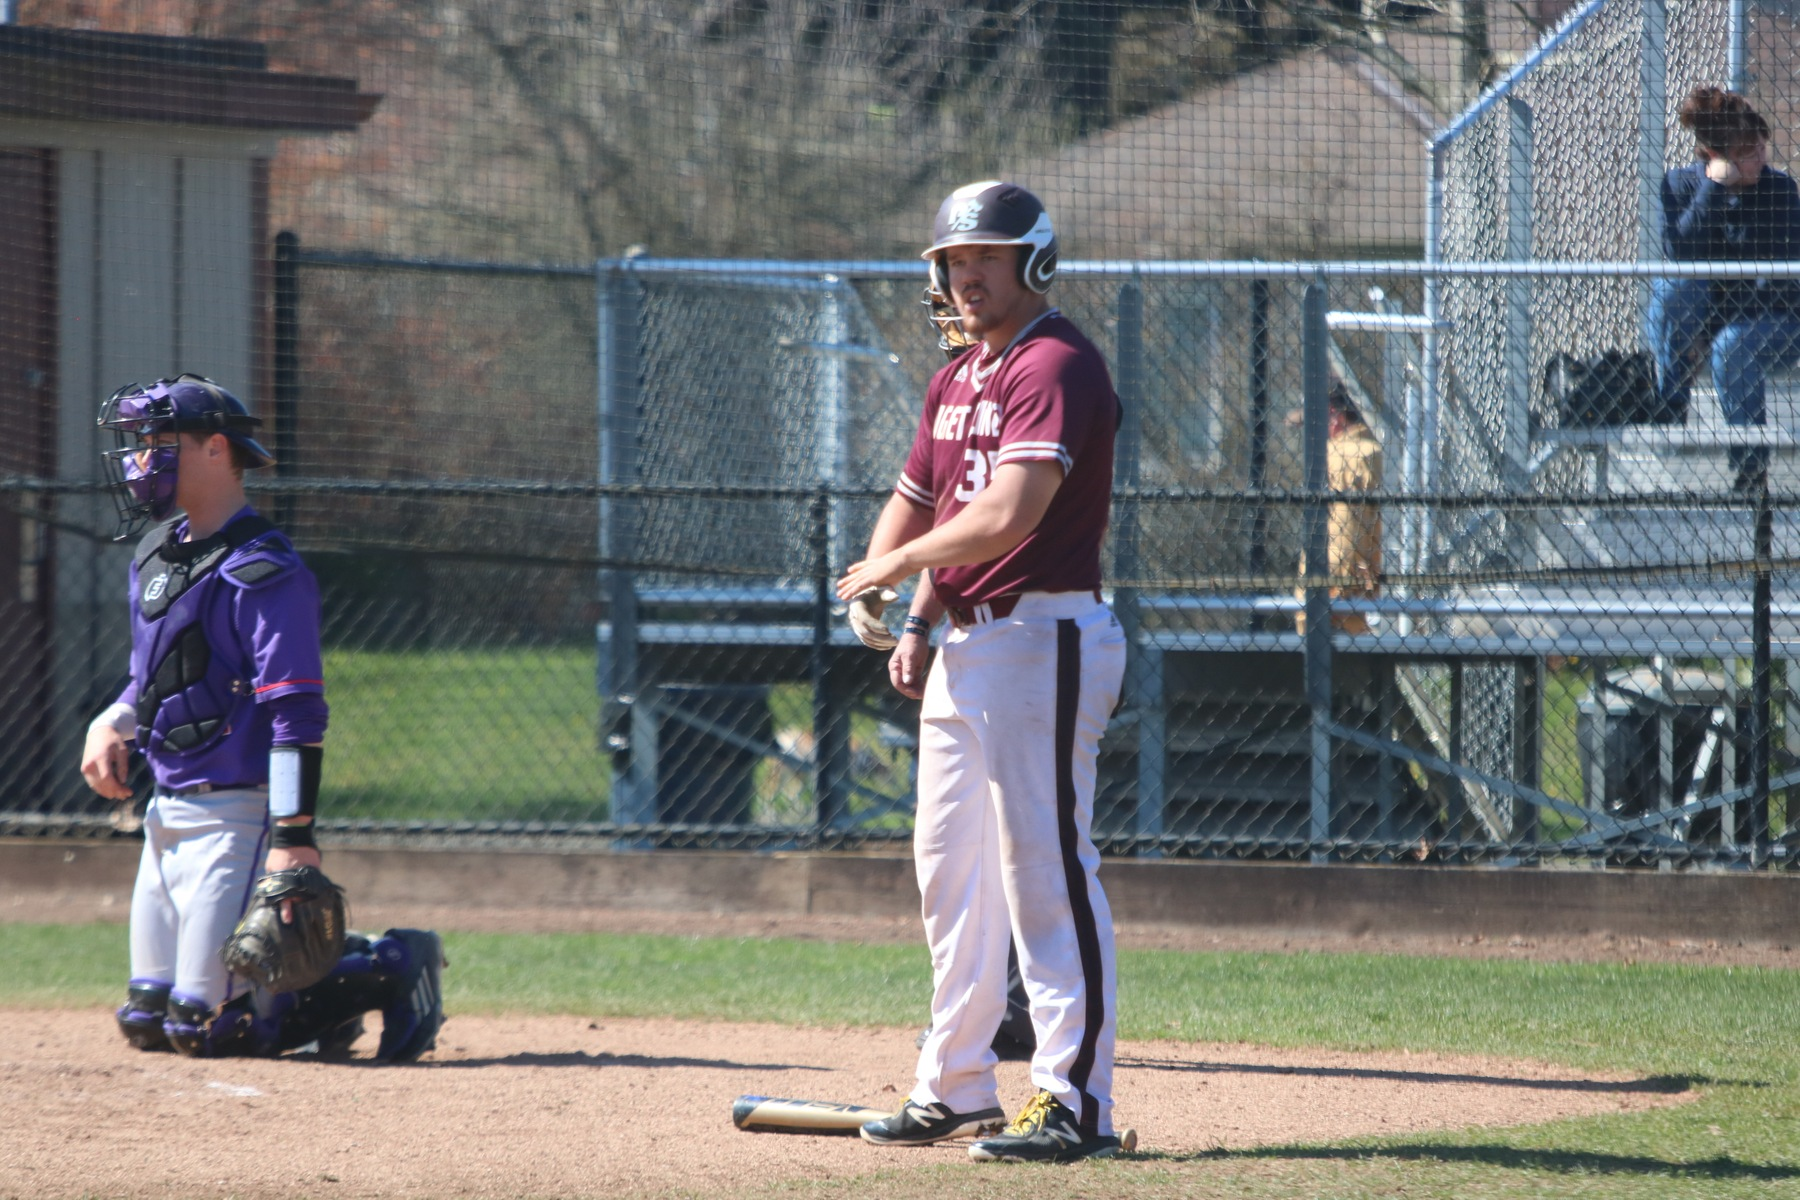 Home series against Whitman to start Friday